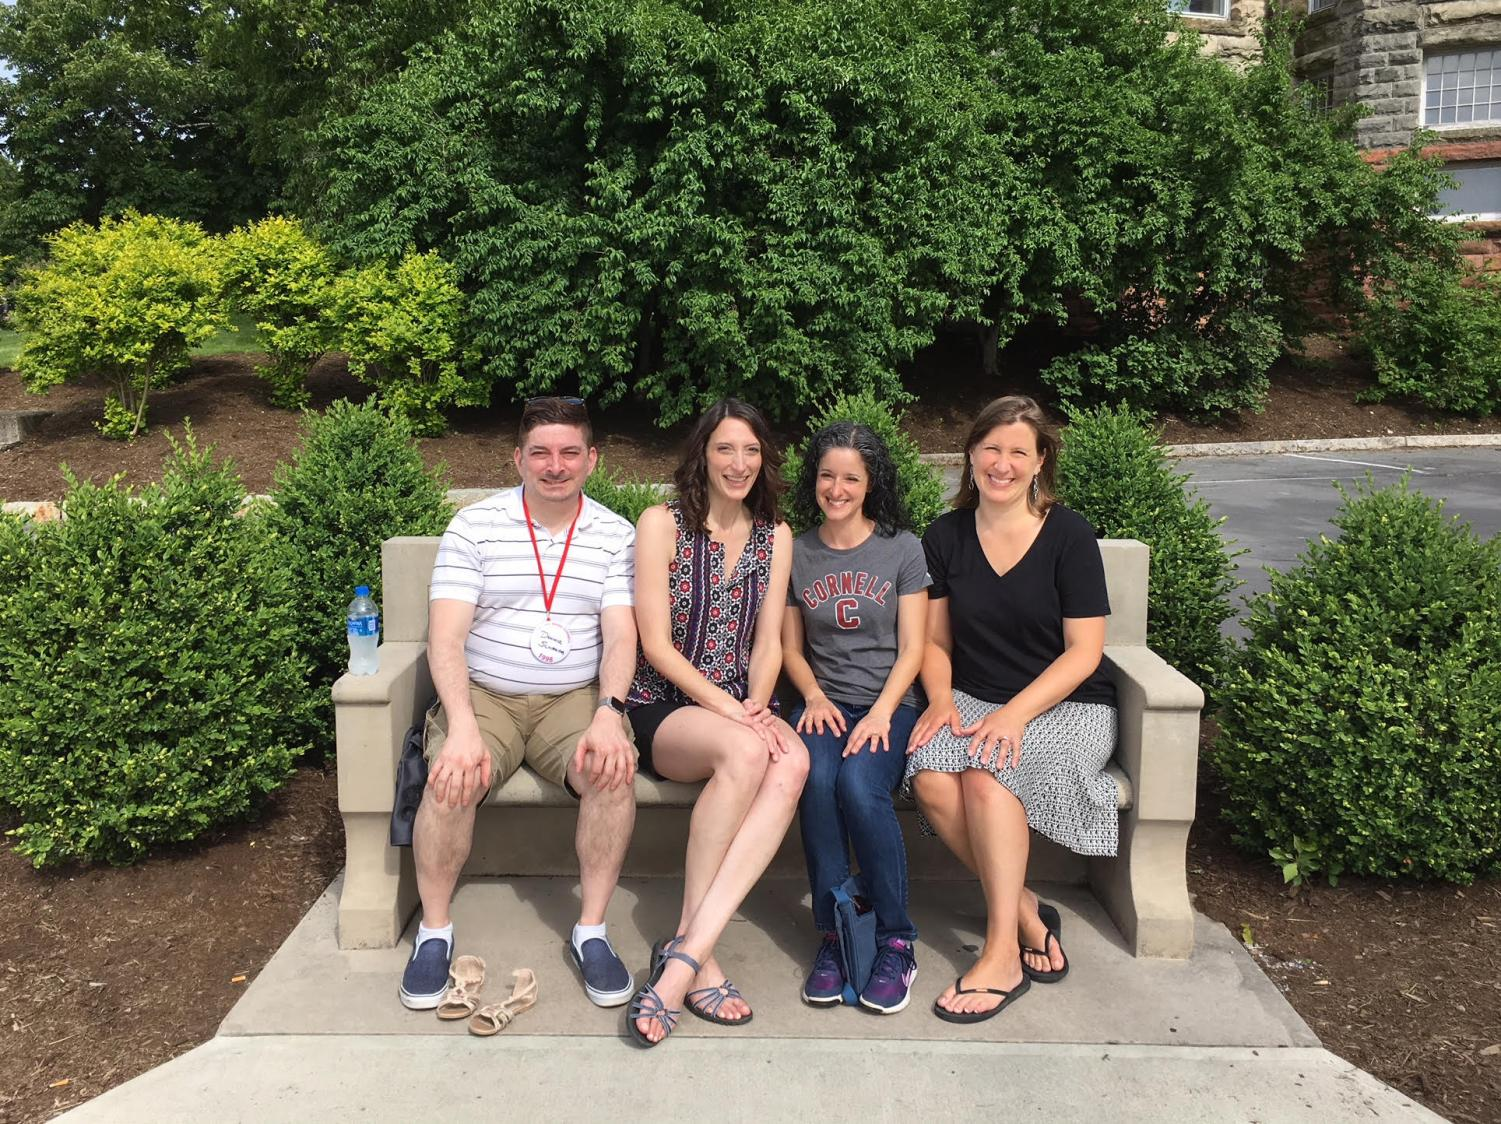 SBP Assistant Headmaster for Academics Ms. Tuorto, third from left, joins friends at her Cornell University reunion in Ithaca, N.Y.